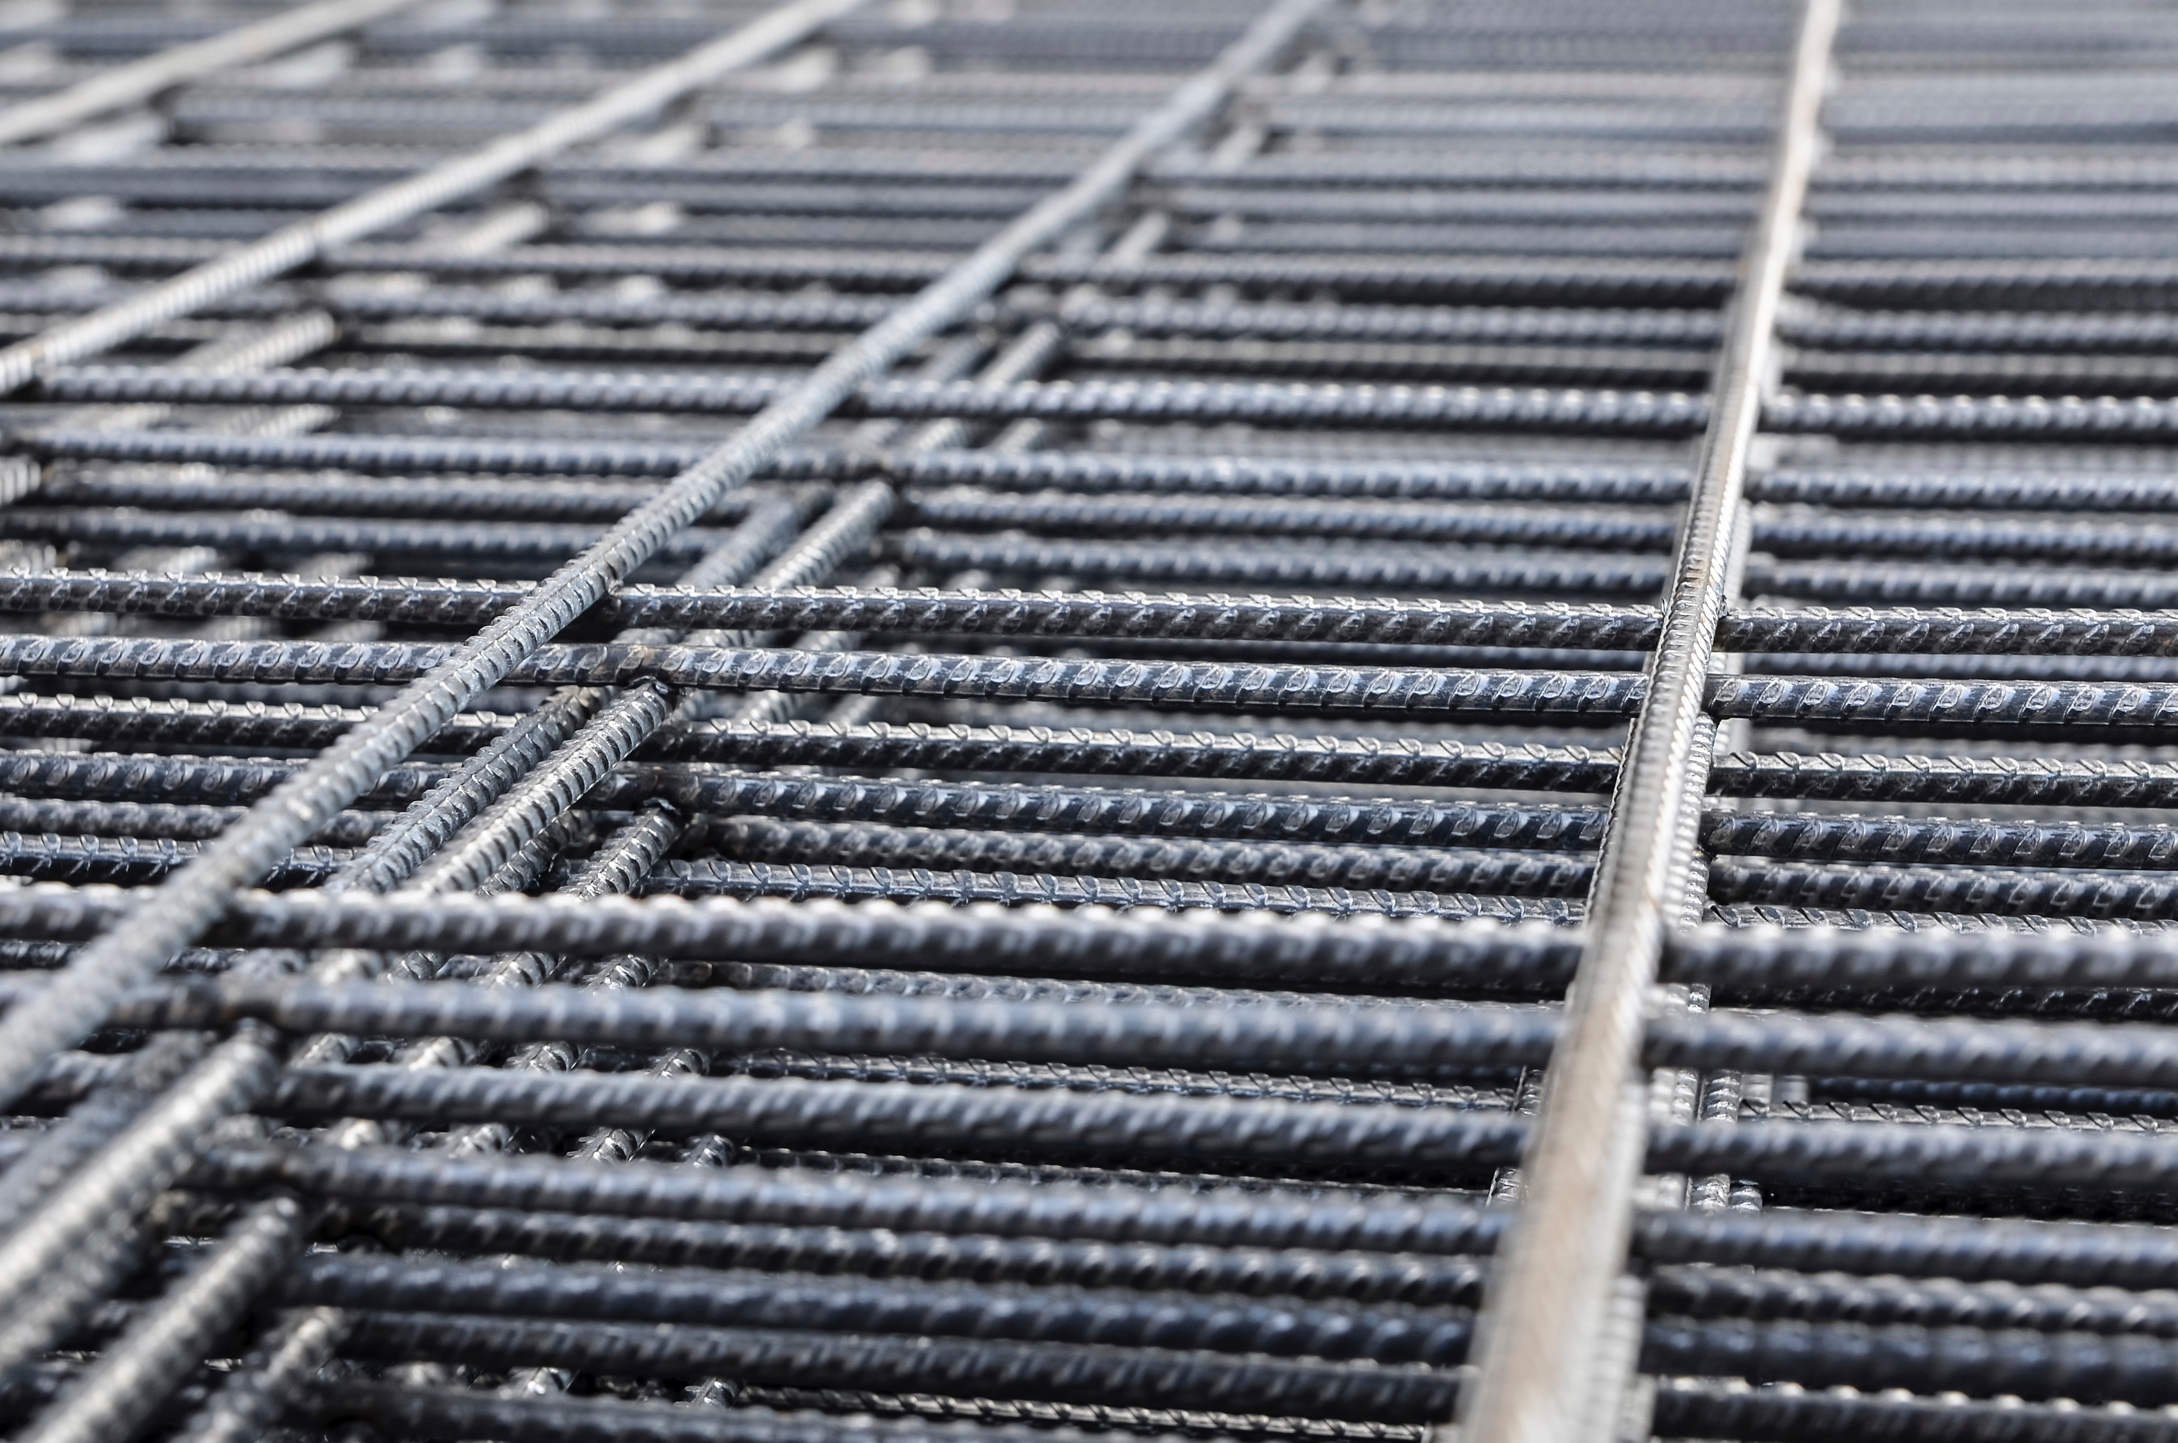 Concreting construction F72 Steel Reinforcing Mesh for concreting